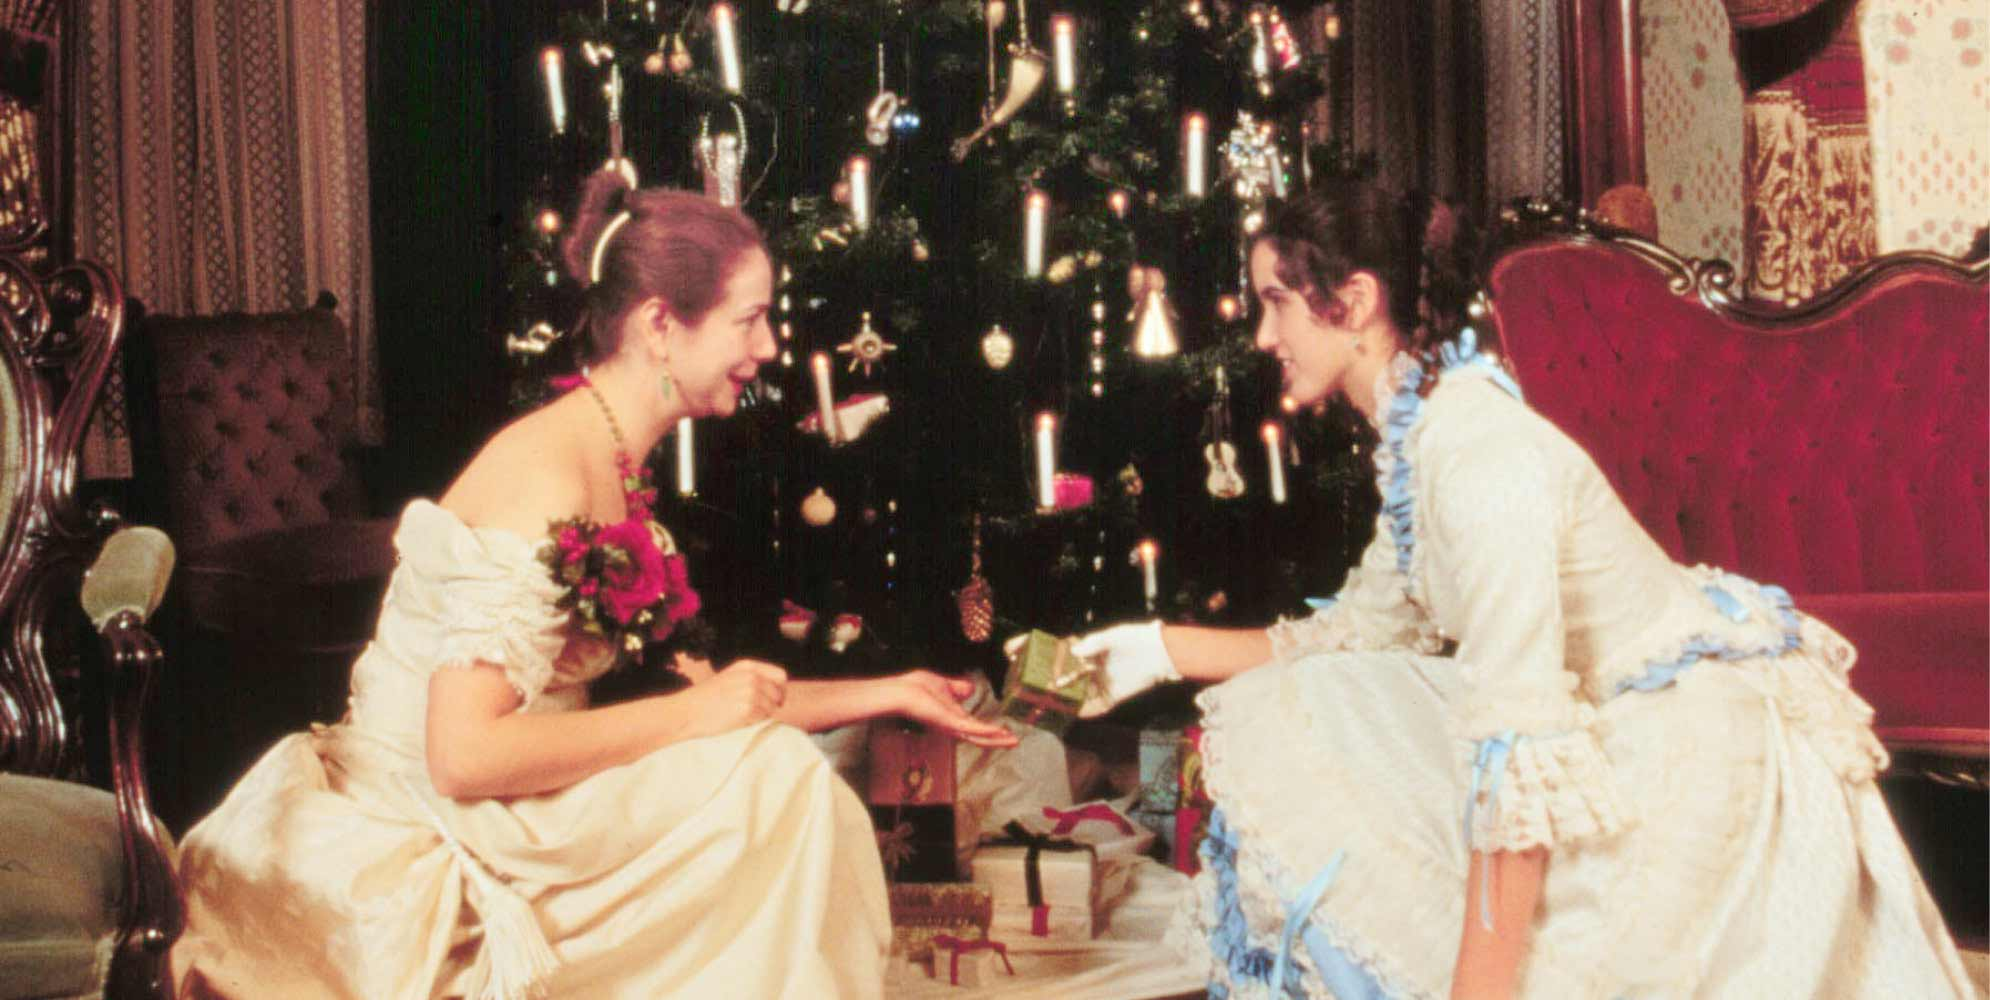 Two women in Victorian dresses sitting in front of a Christmas tree exchanging gifts